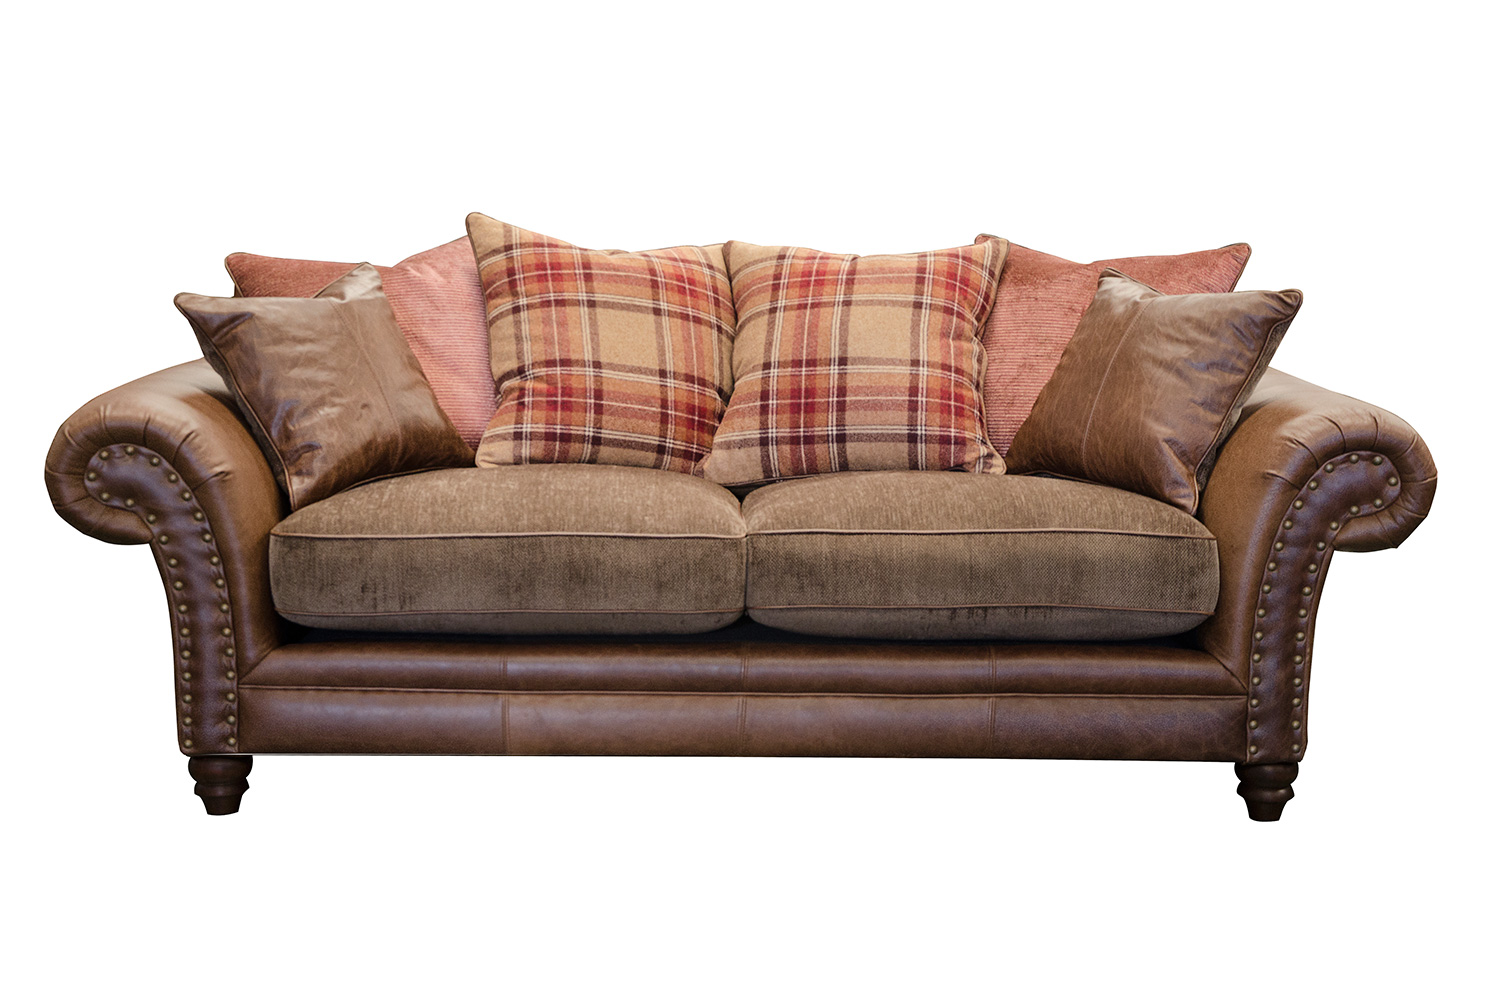 3 Sofas Hudson 3 Seater Sofa Alexander And James